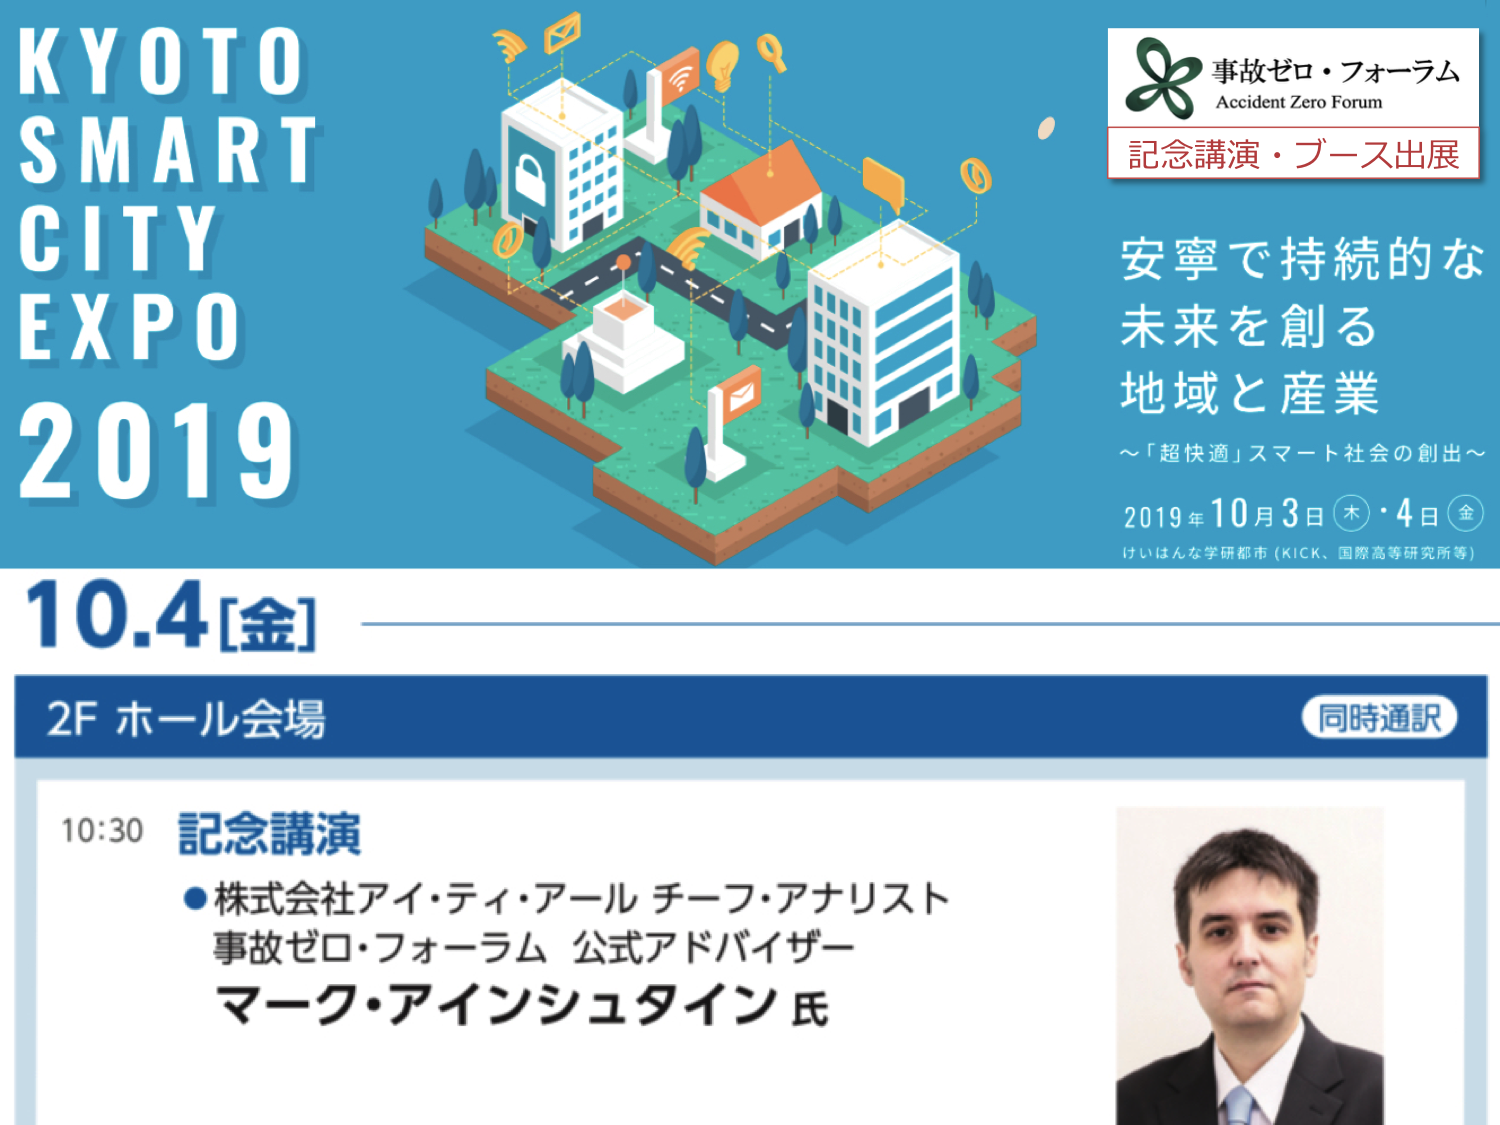 KyotoSmartCityExpo2019 Marc-Speech